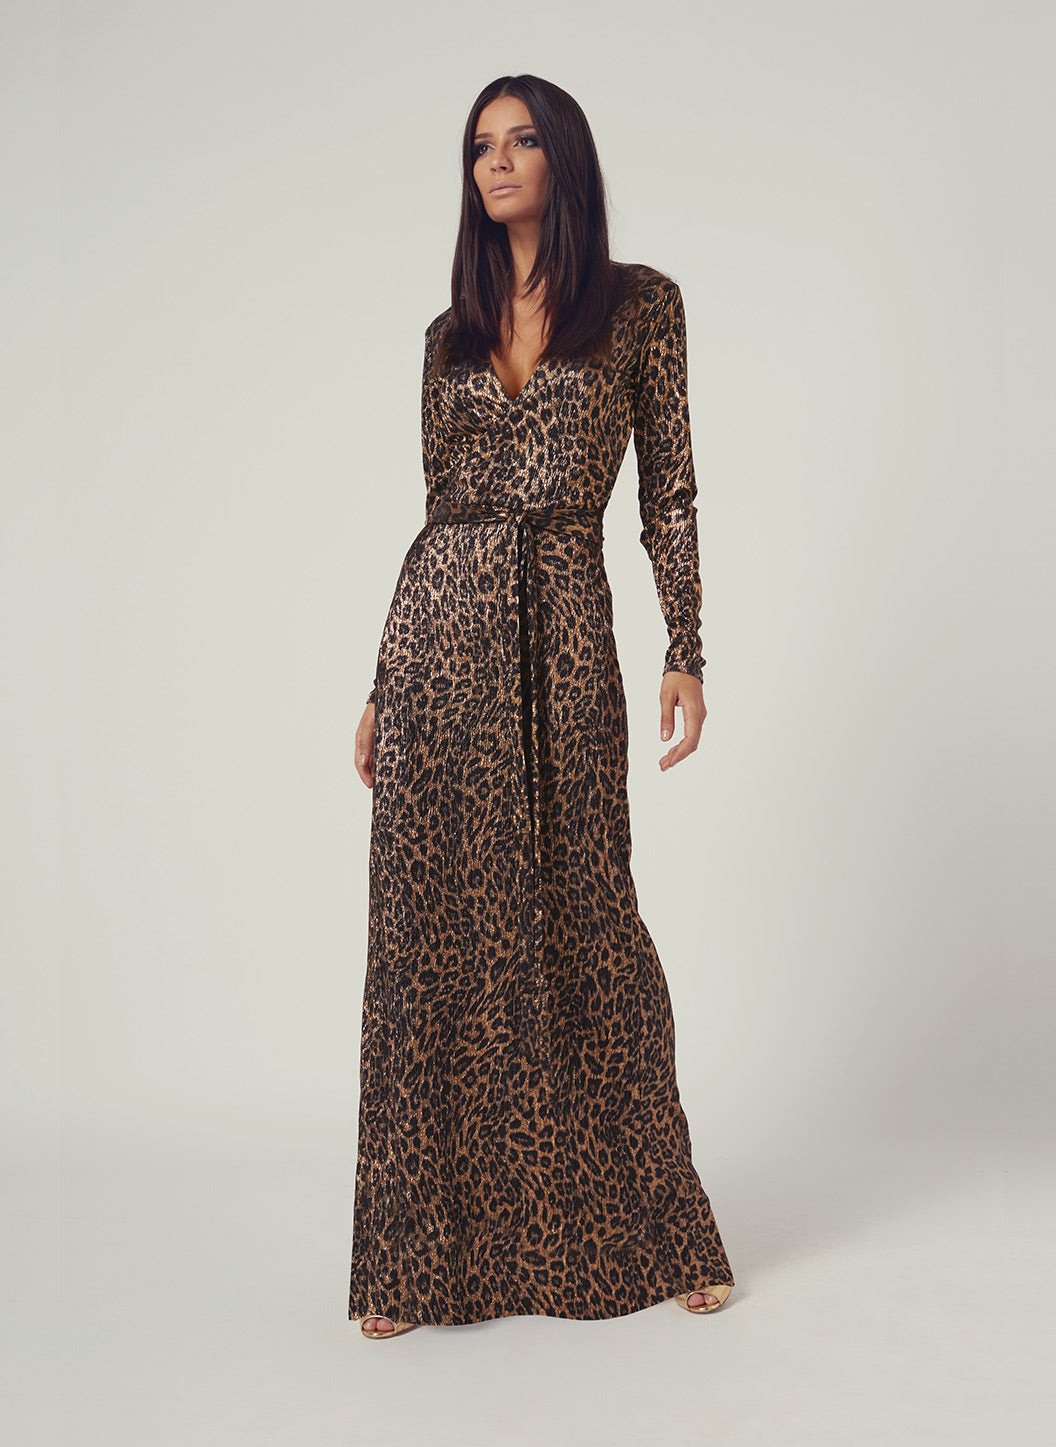 Look 3 Wrap Maxi Dress Leopard - Melissa Odabash Anniversary Collection